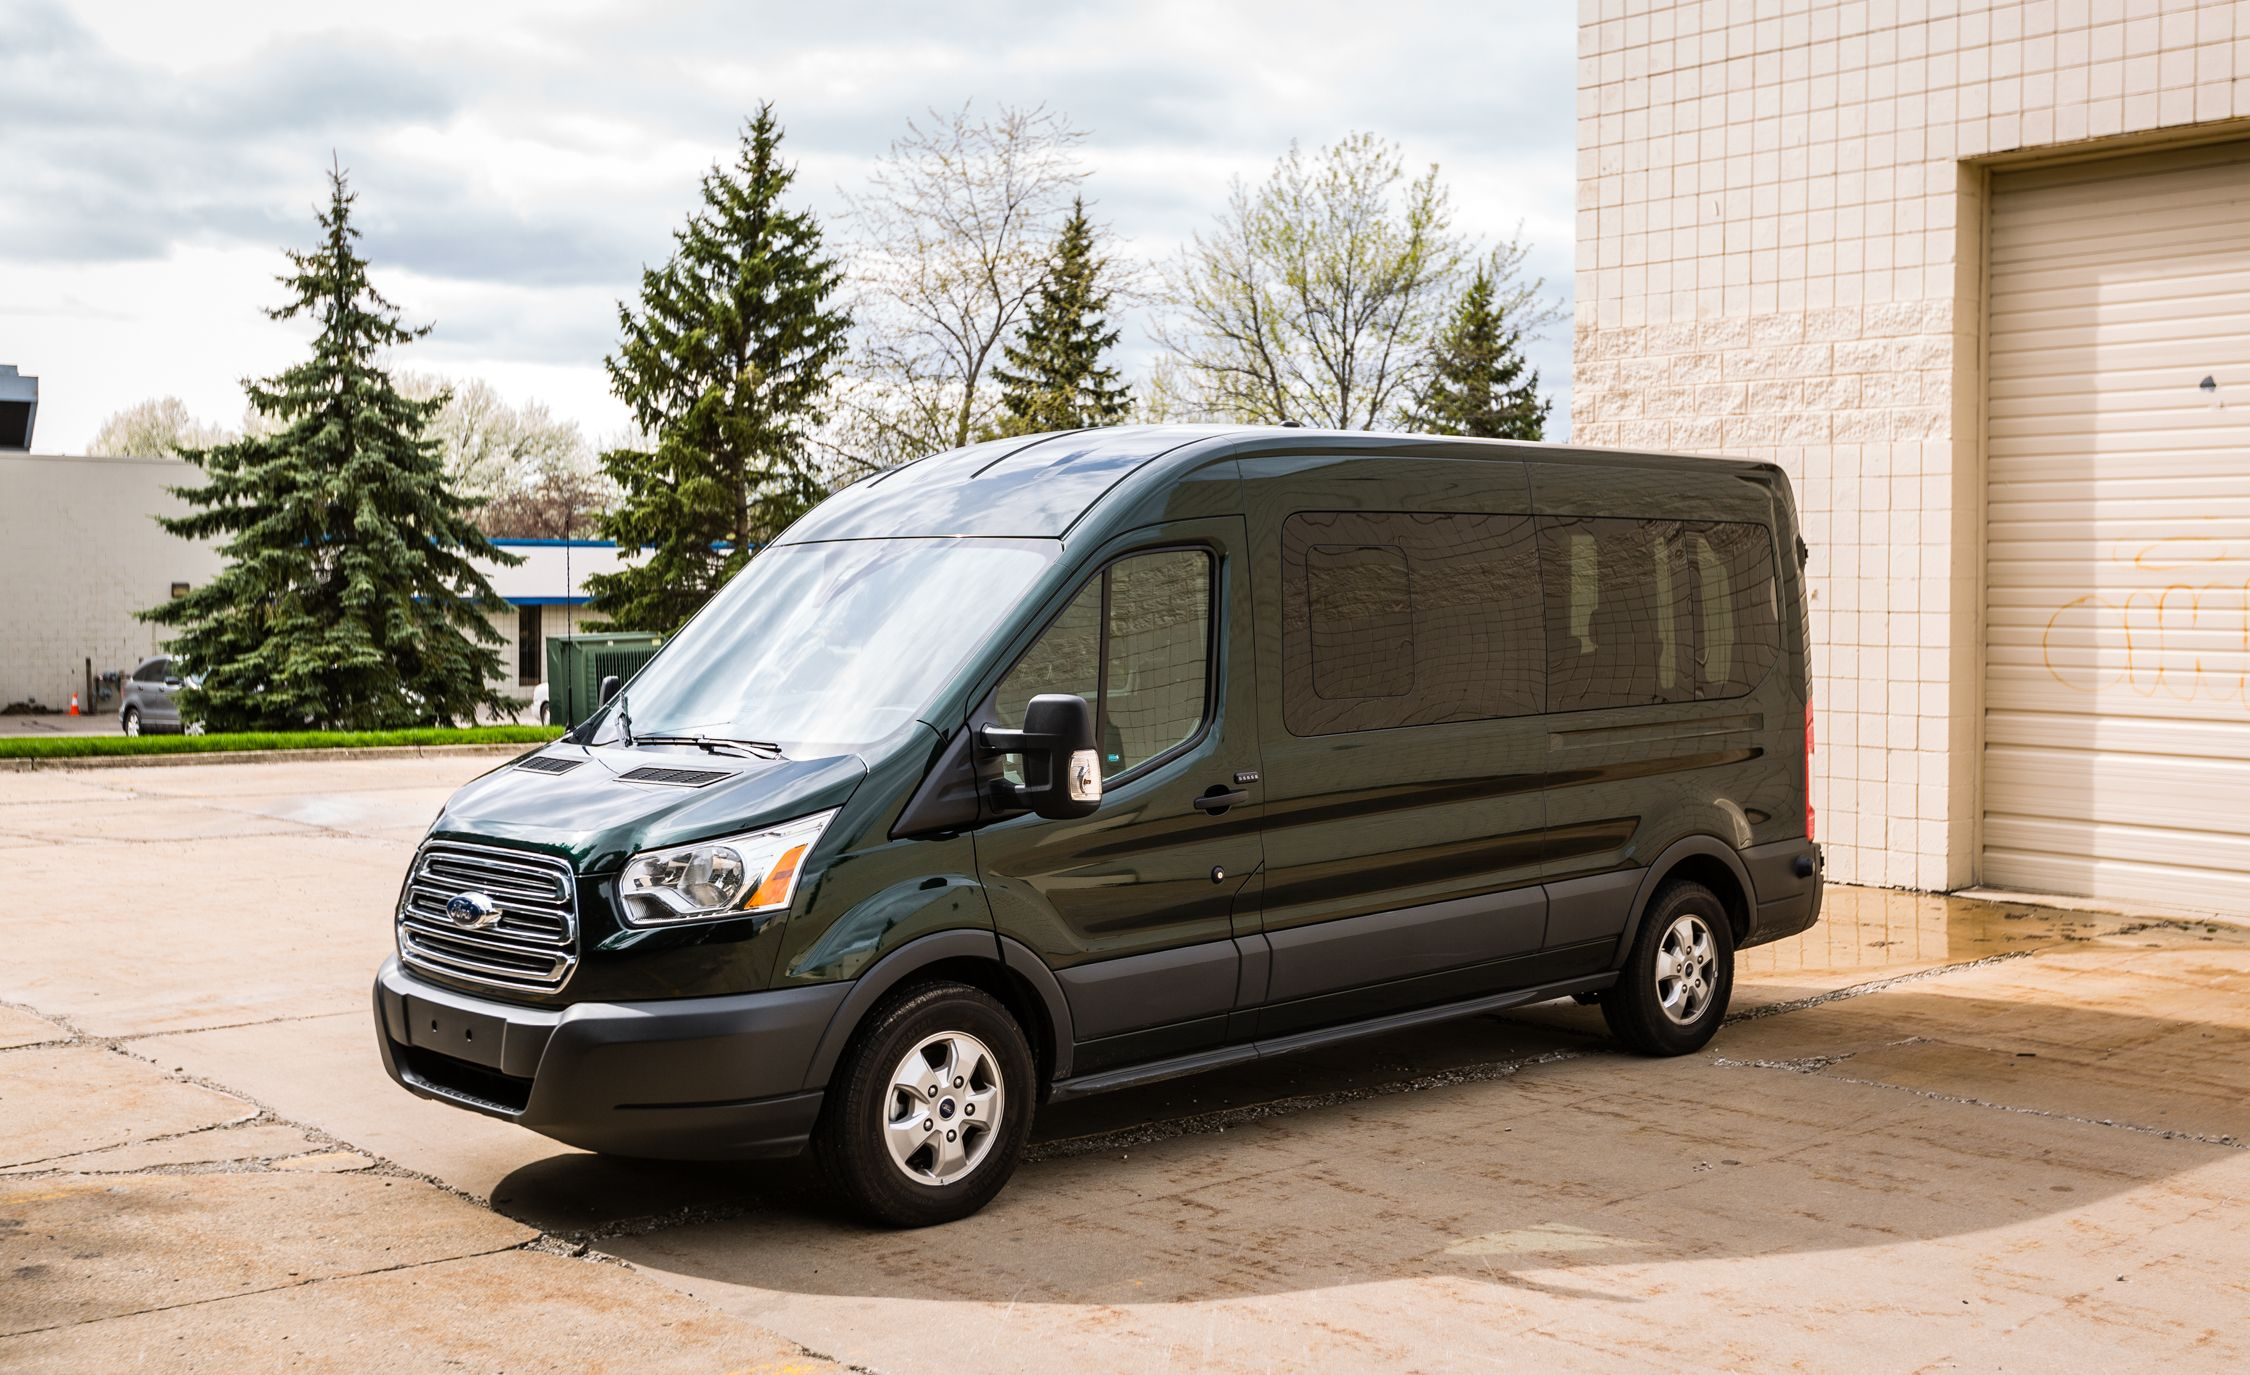 Ford Transit Reviews | Ford Transit Price, Photos, and Specs | Car ...